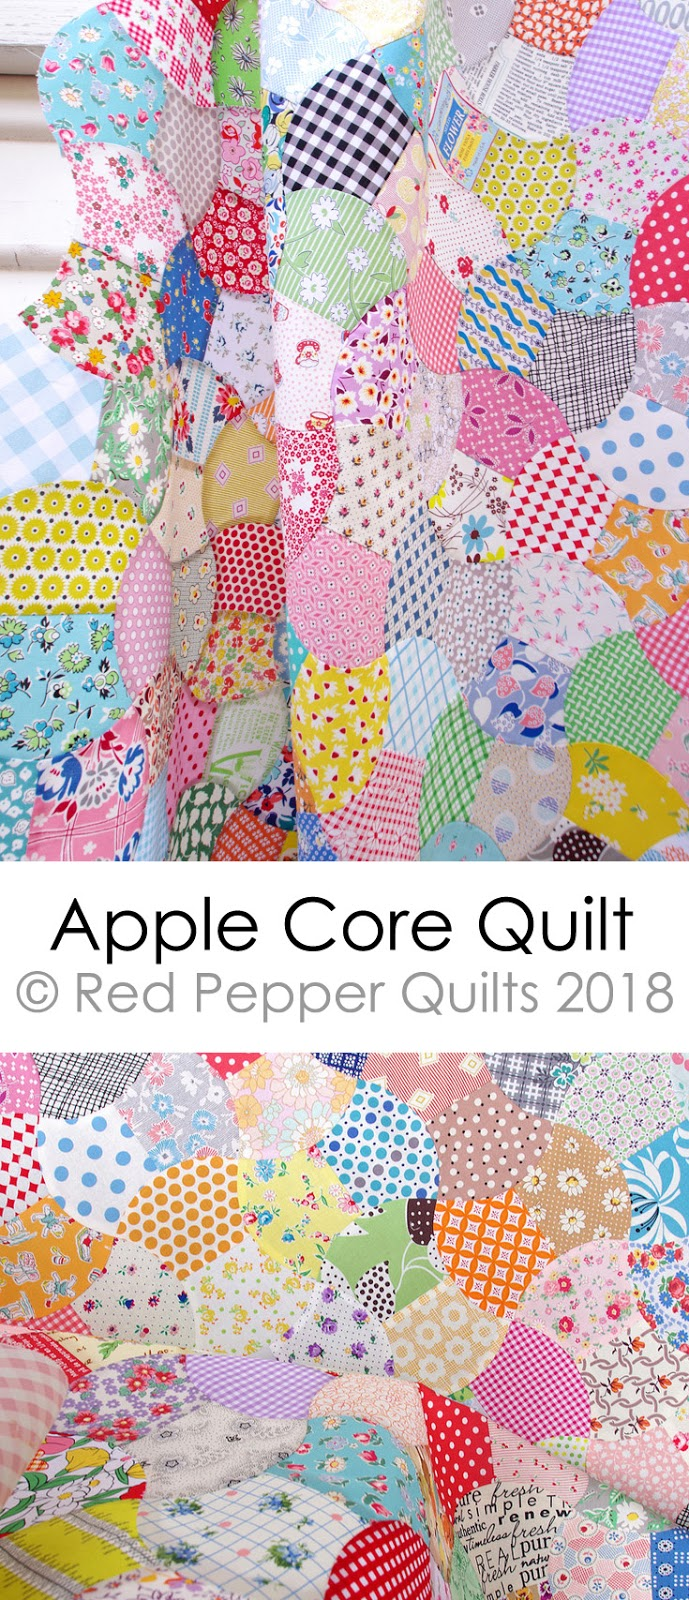 Apple Core Quilt - Machine Pieced | © Red Pepper Quilts 2018 #applecorequilt #patchworkquilt #vintageinspiredquilt #machinepieced